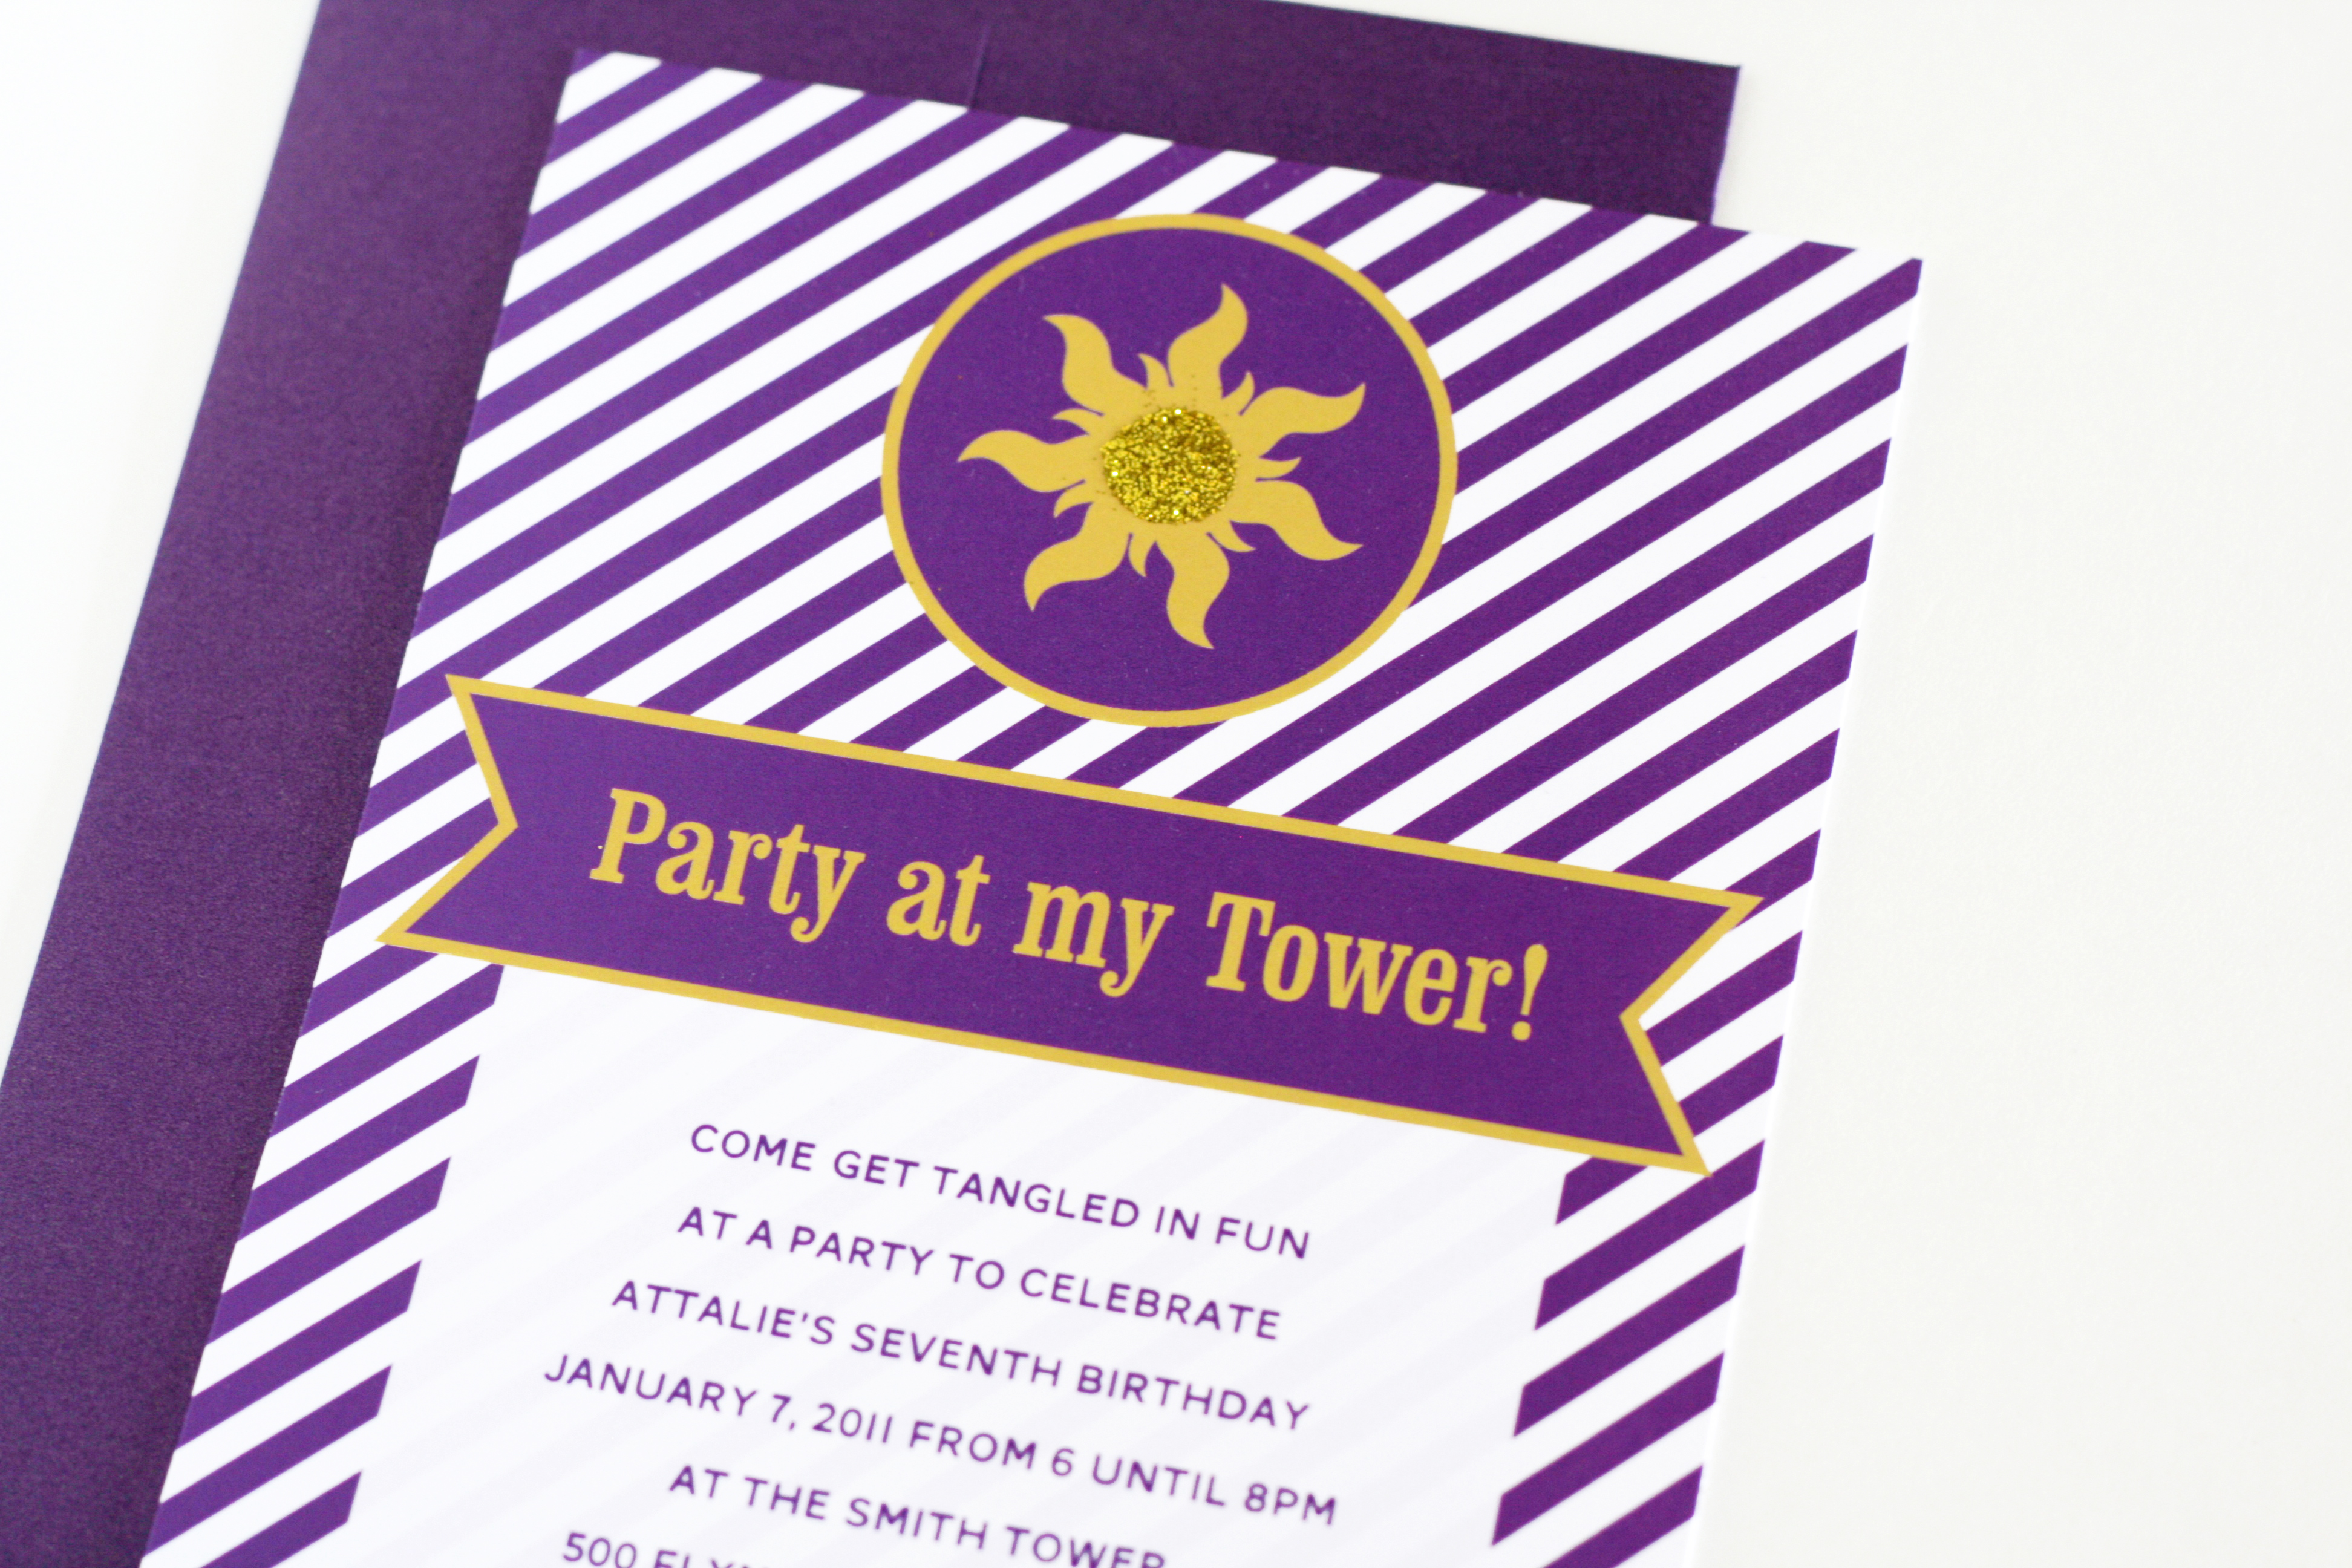 Oh Yes And Youll Need Our Free Printable Fill In Rapunzel Party Invitations Templates Here At My Tower Or Lets Tangle